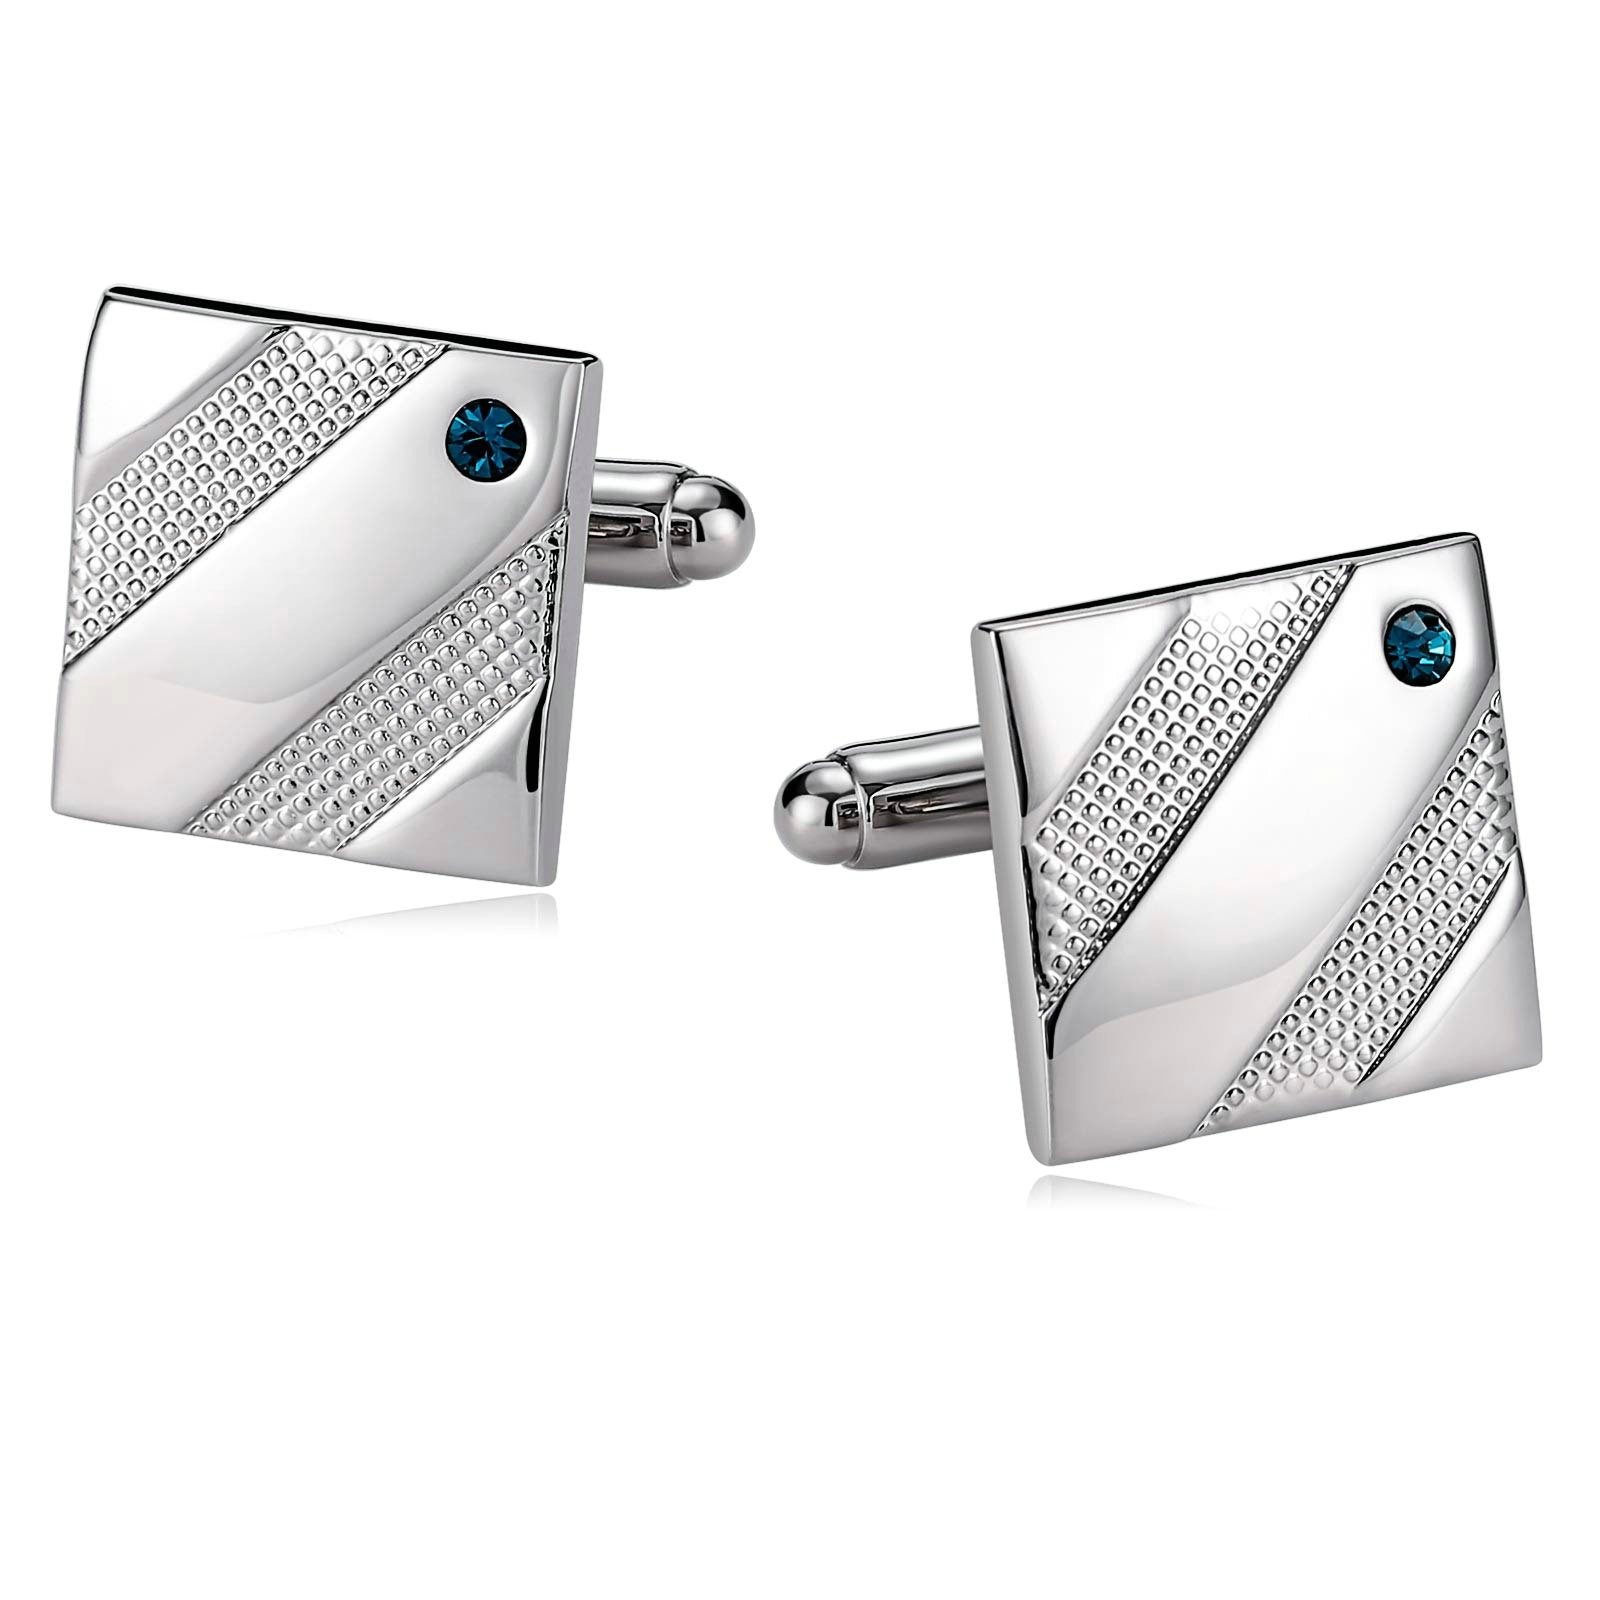 KnSam Cufflinks for Men Stainless Steel Diagonal Single Crystal Square Silver Blue